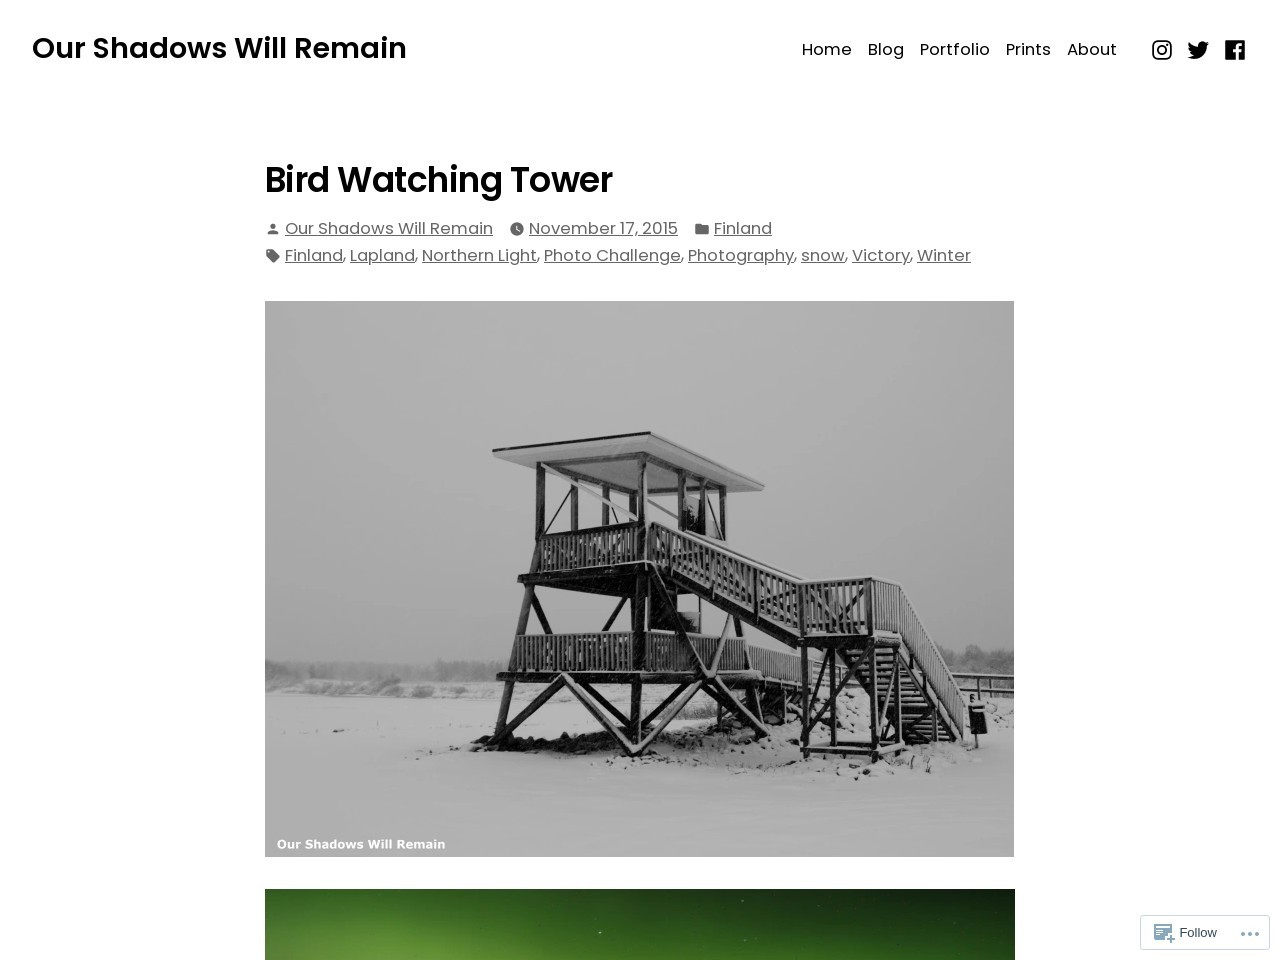 Bird Watching Tower | Our Shadows Will Remain